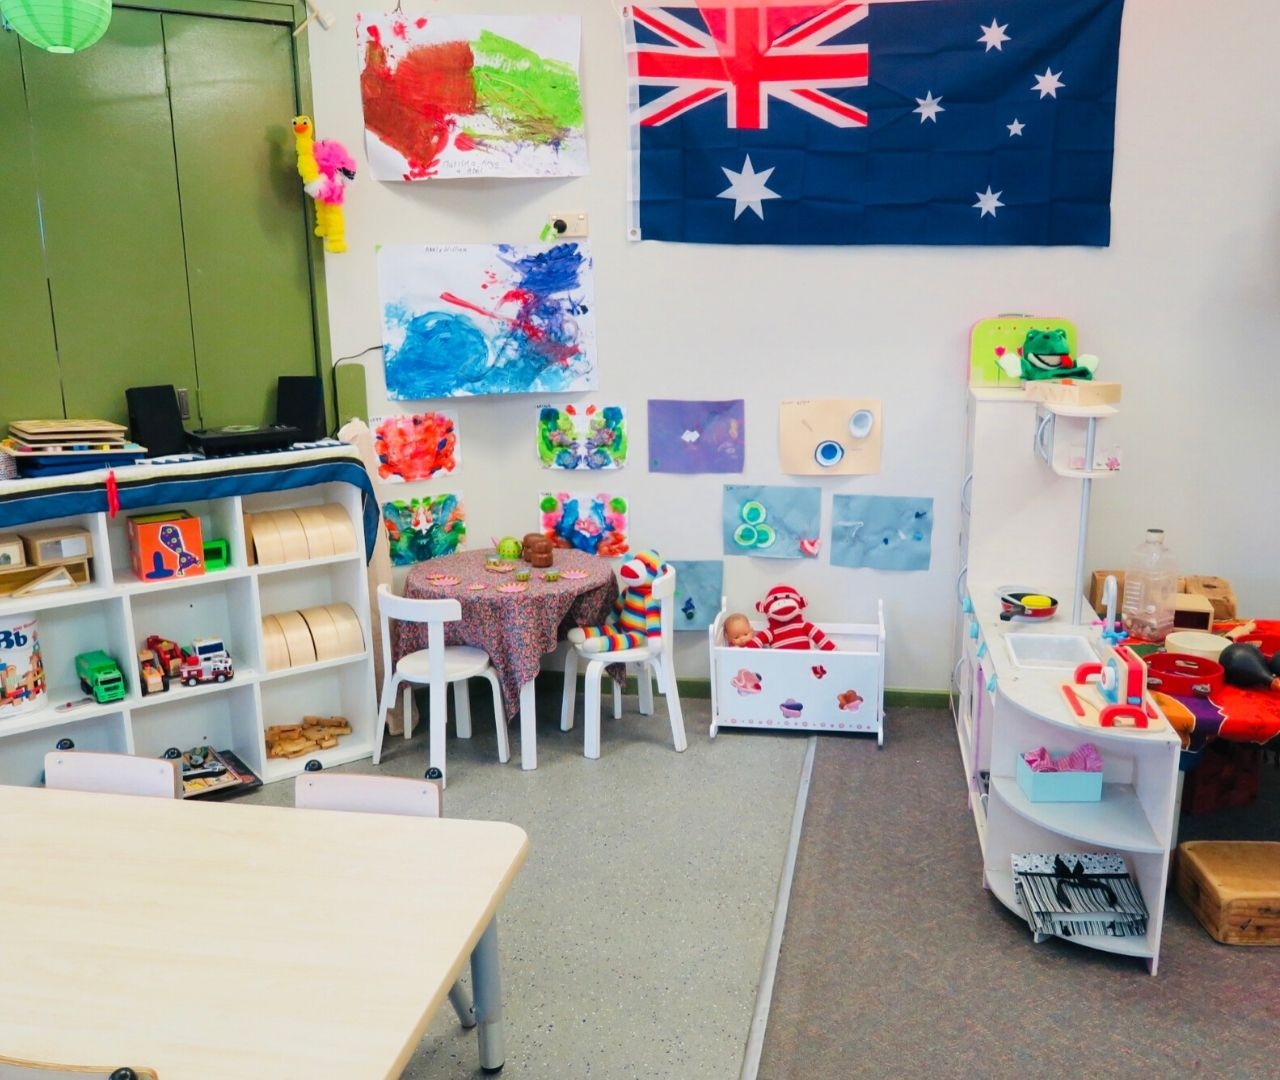 Mill Park heights Childcare Centre inside 6